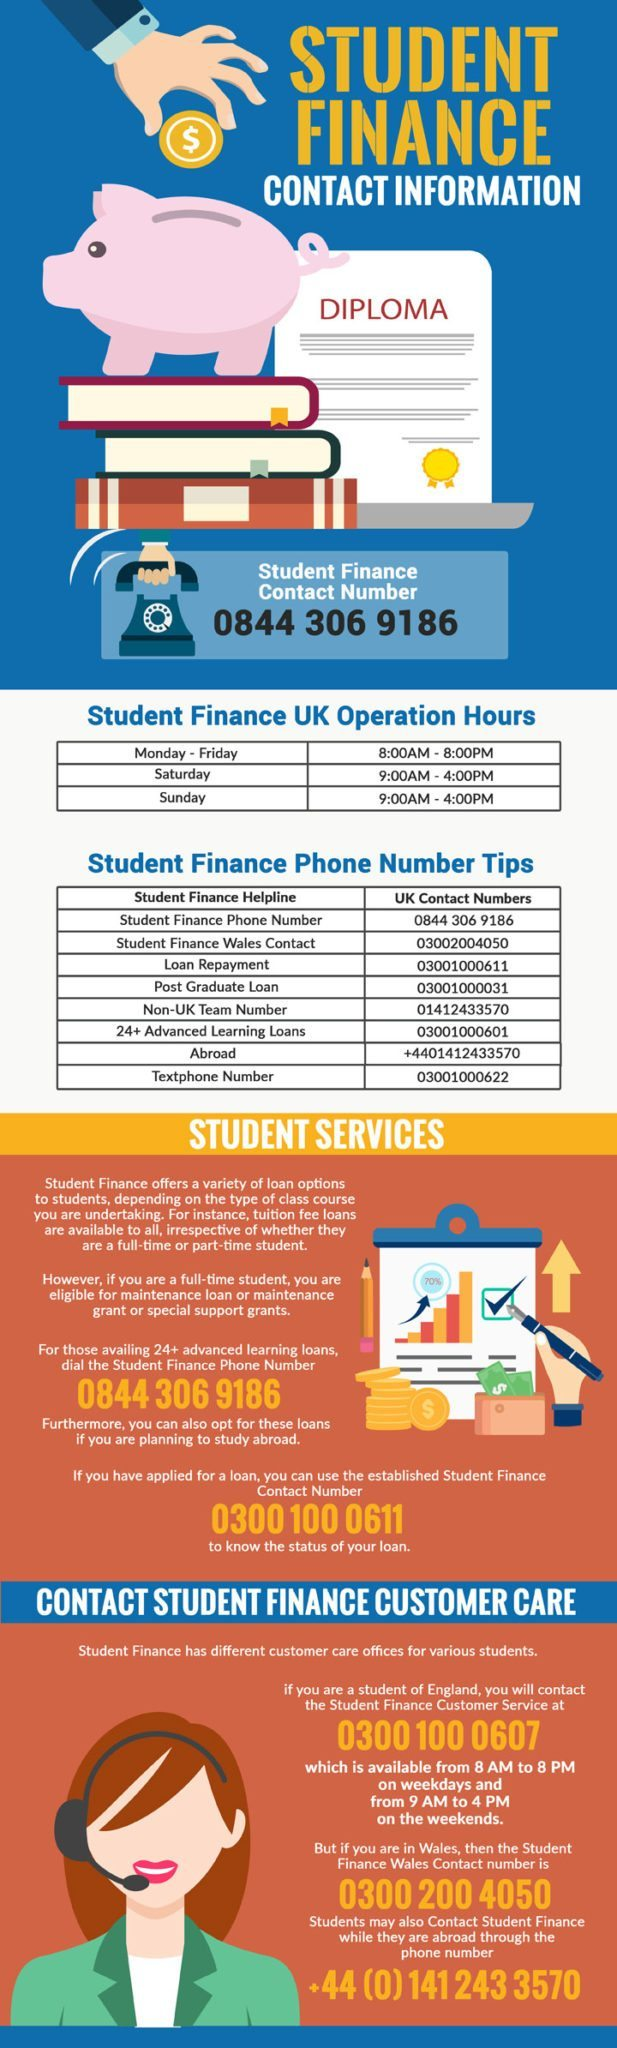 Student Finance Customer Services